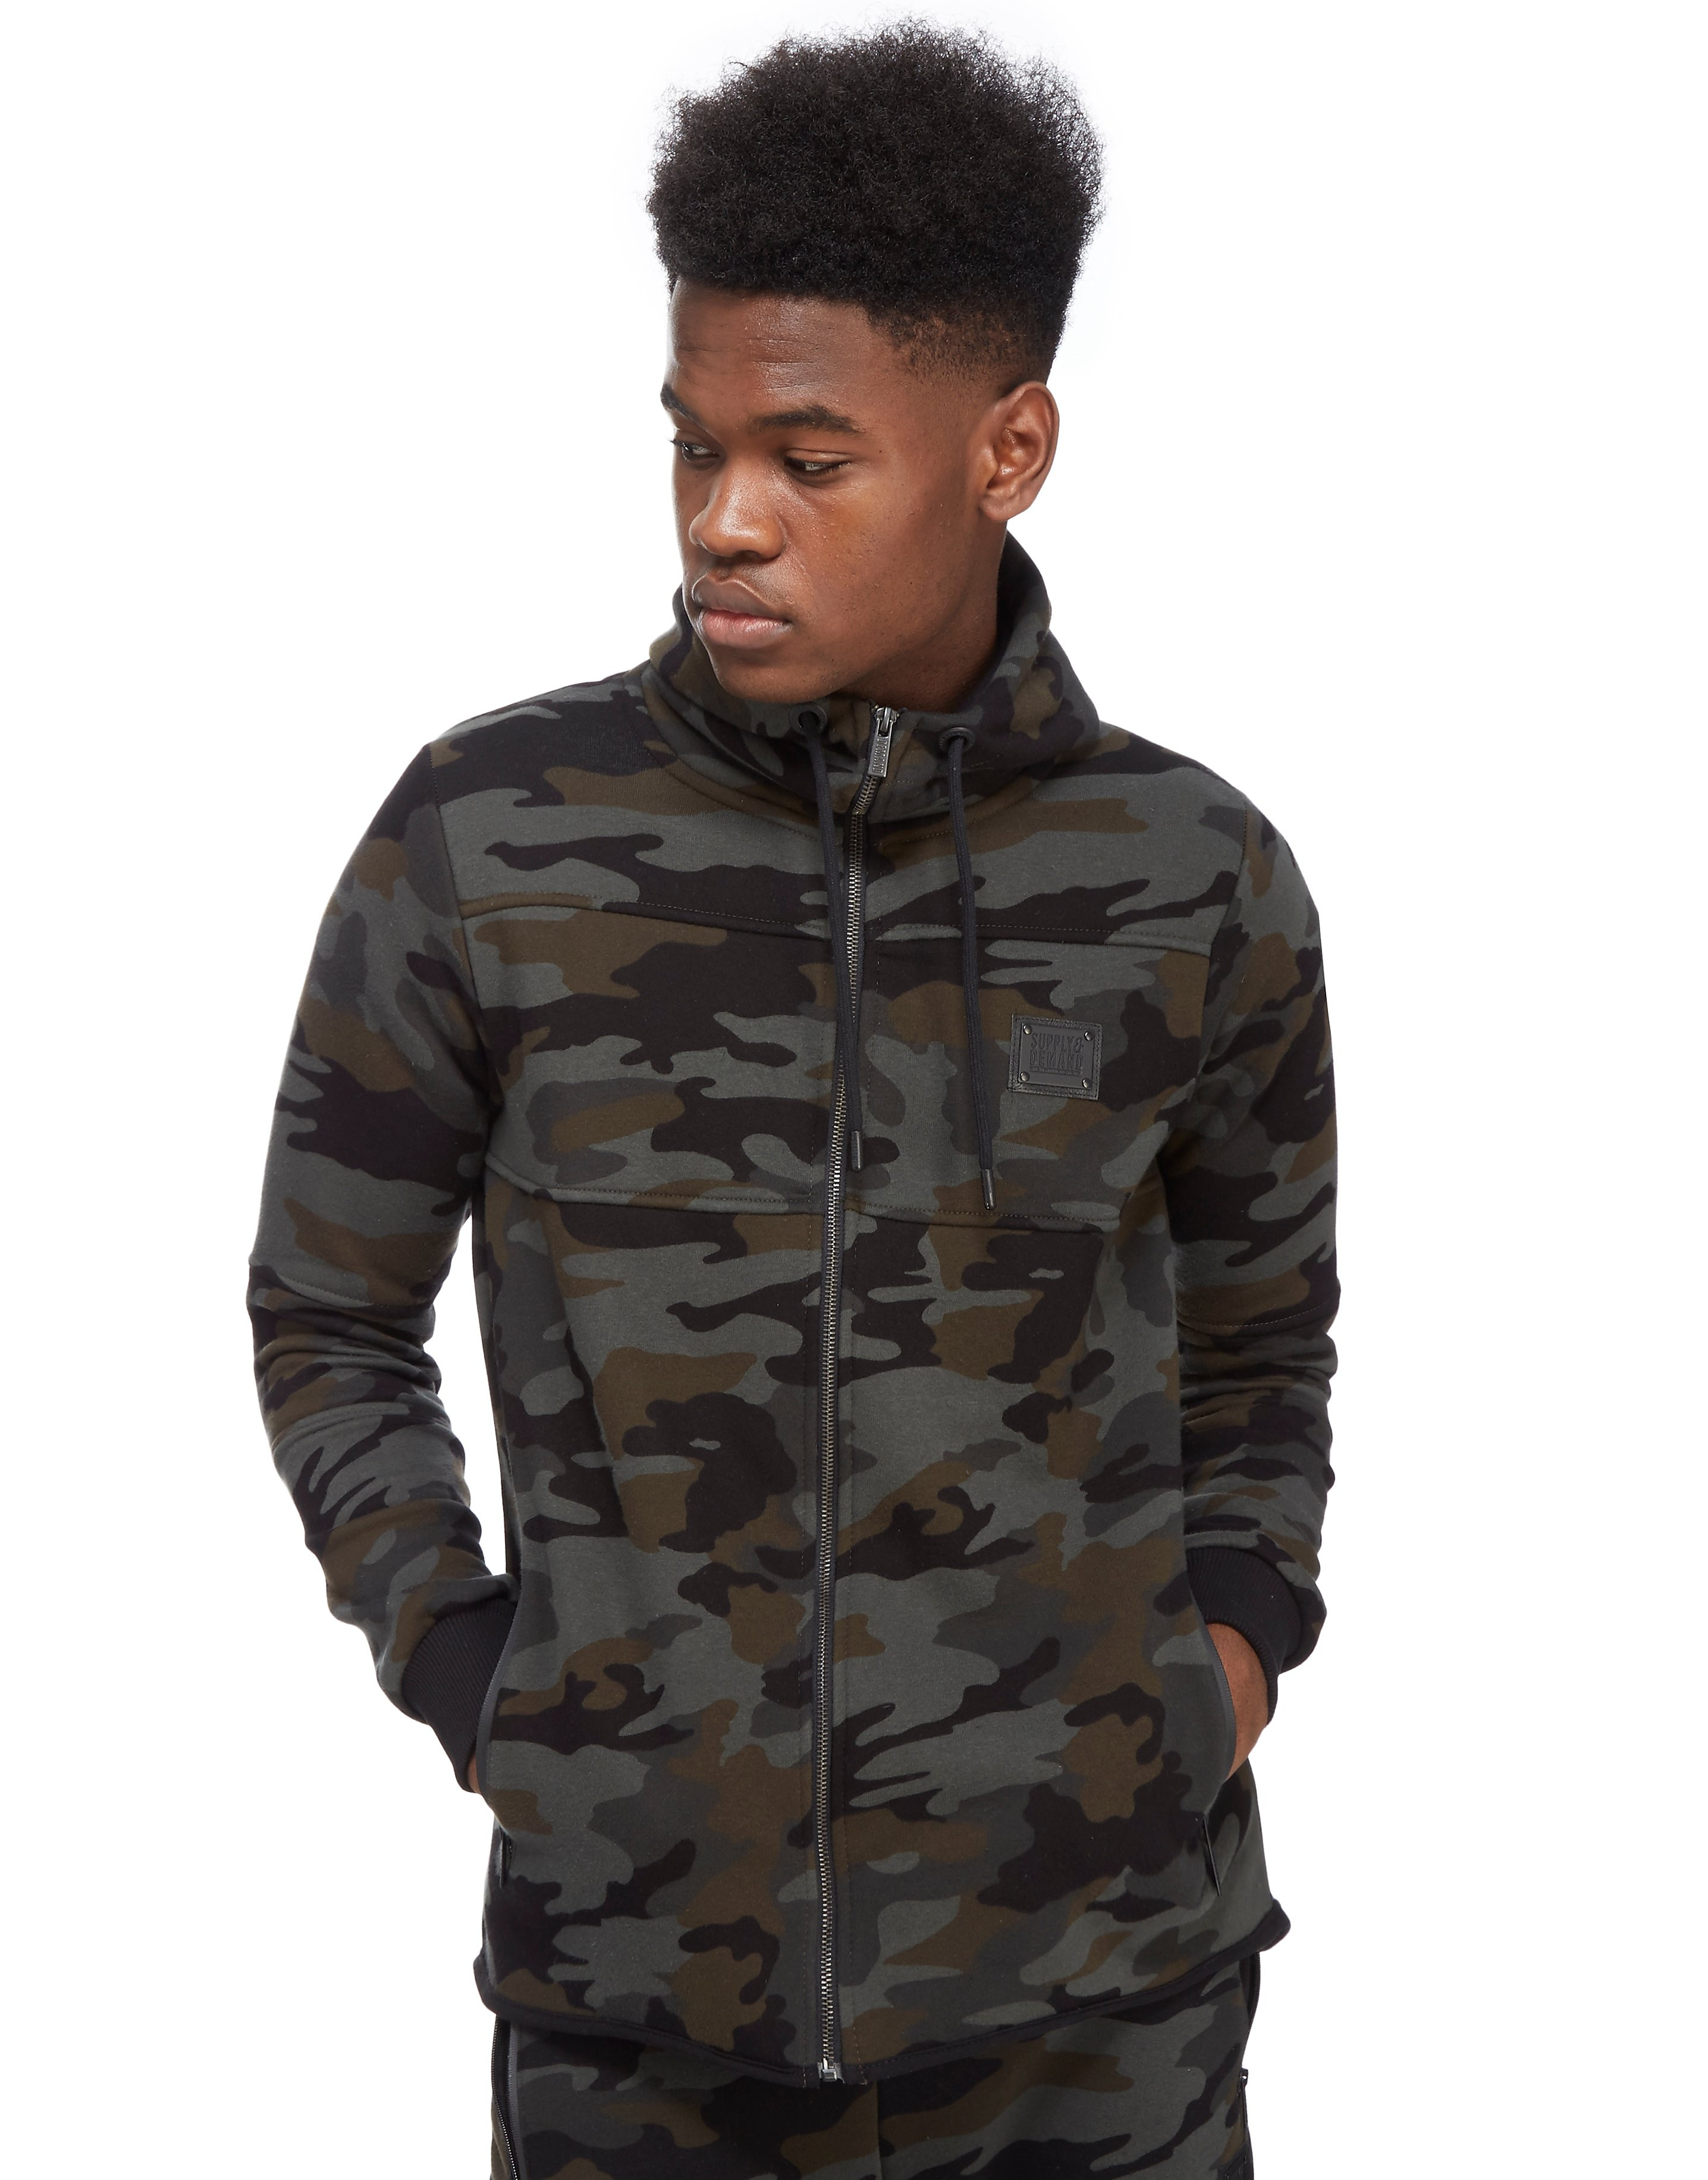 Supply & Demand Green Camo Hoody